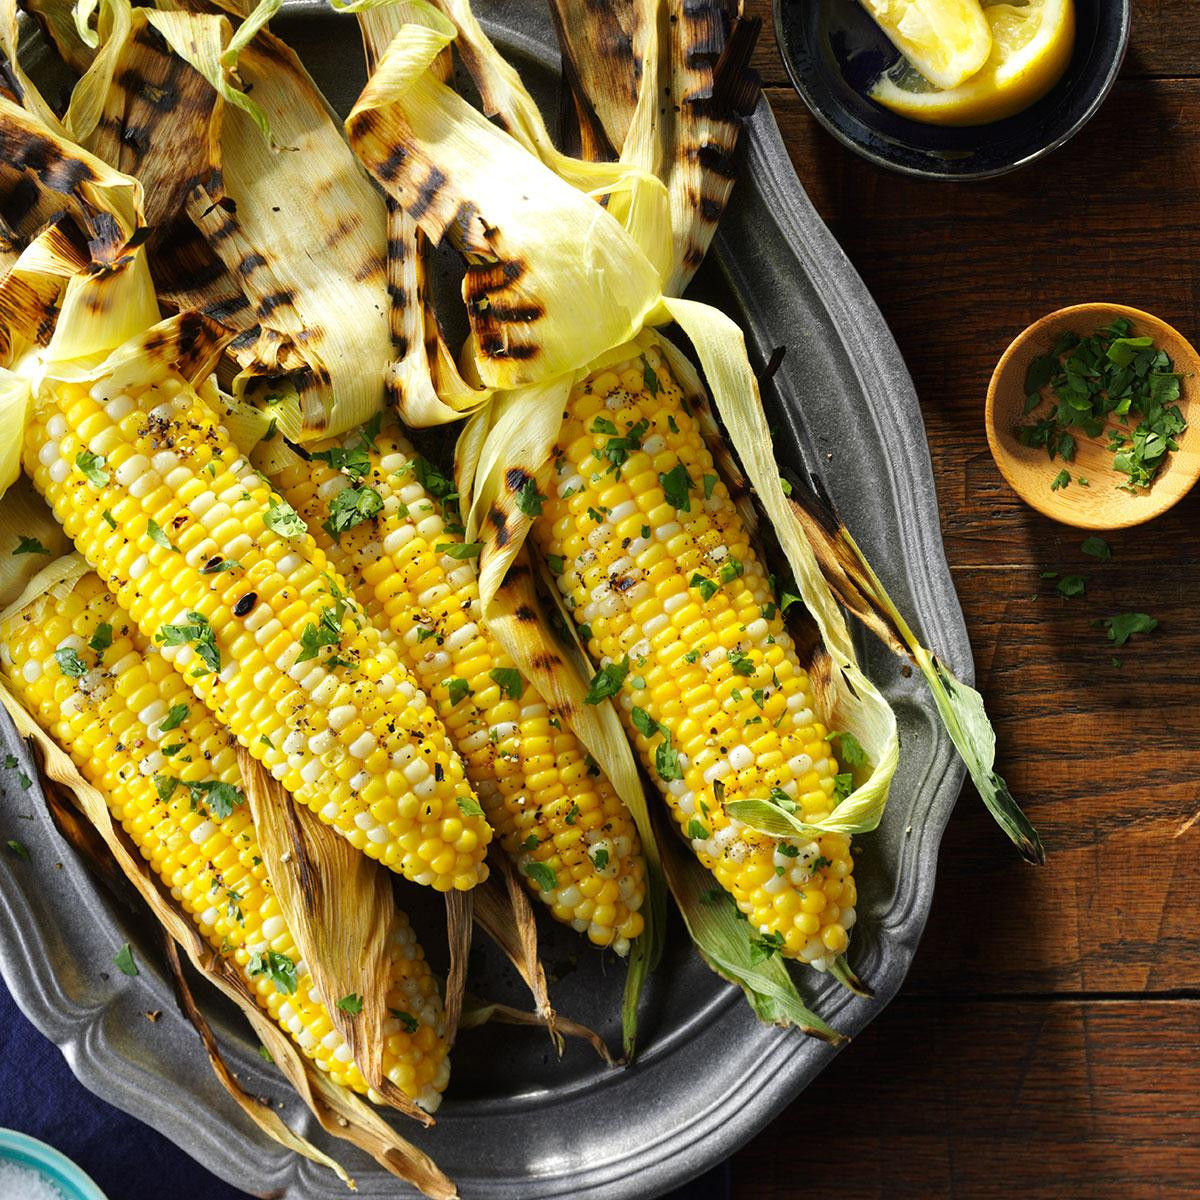 Grilled Corn On The Cob Recipe  Basil Grilled Corn on the Cob Recipe